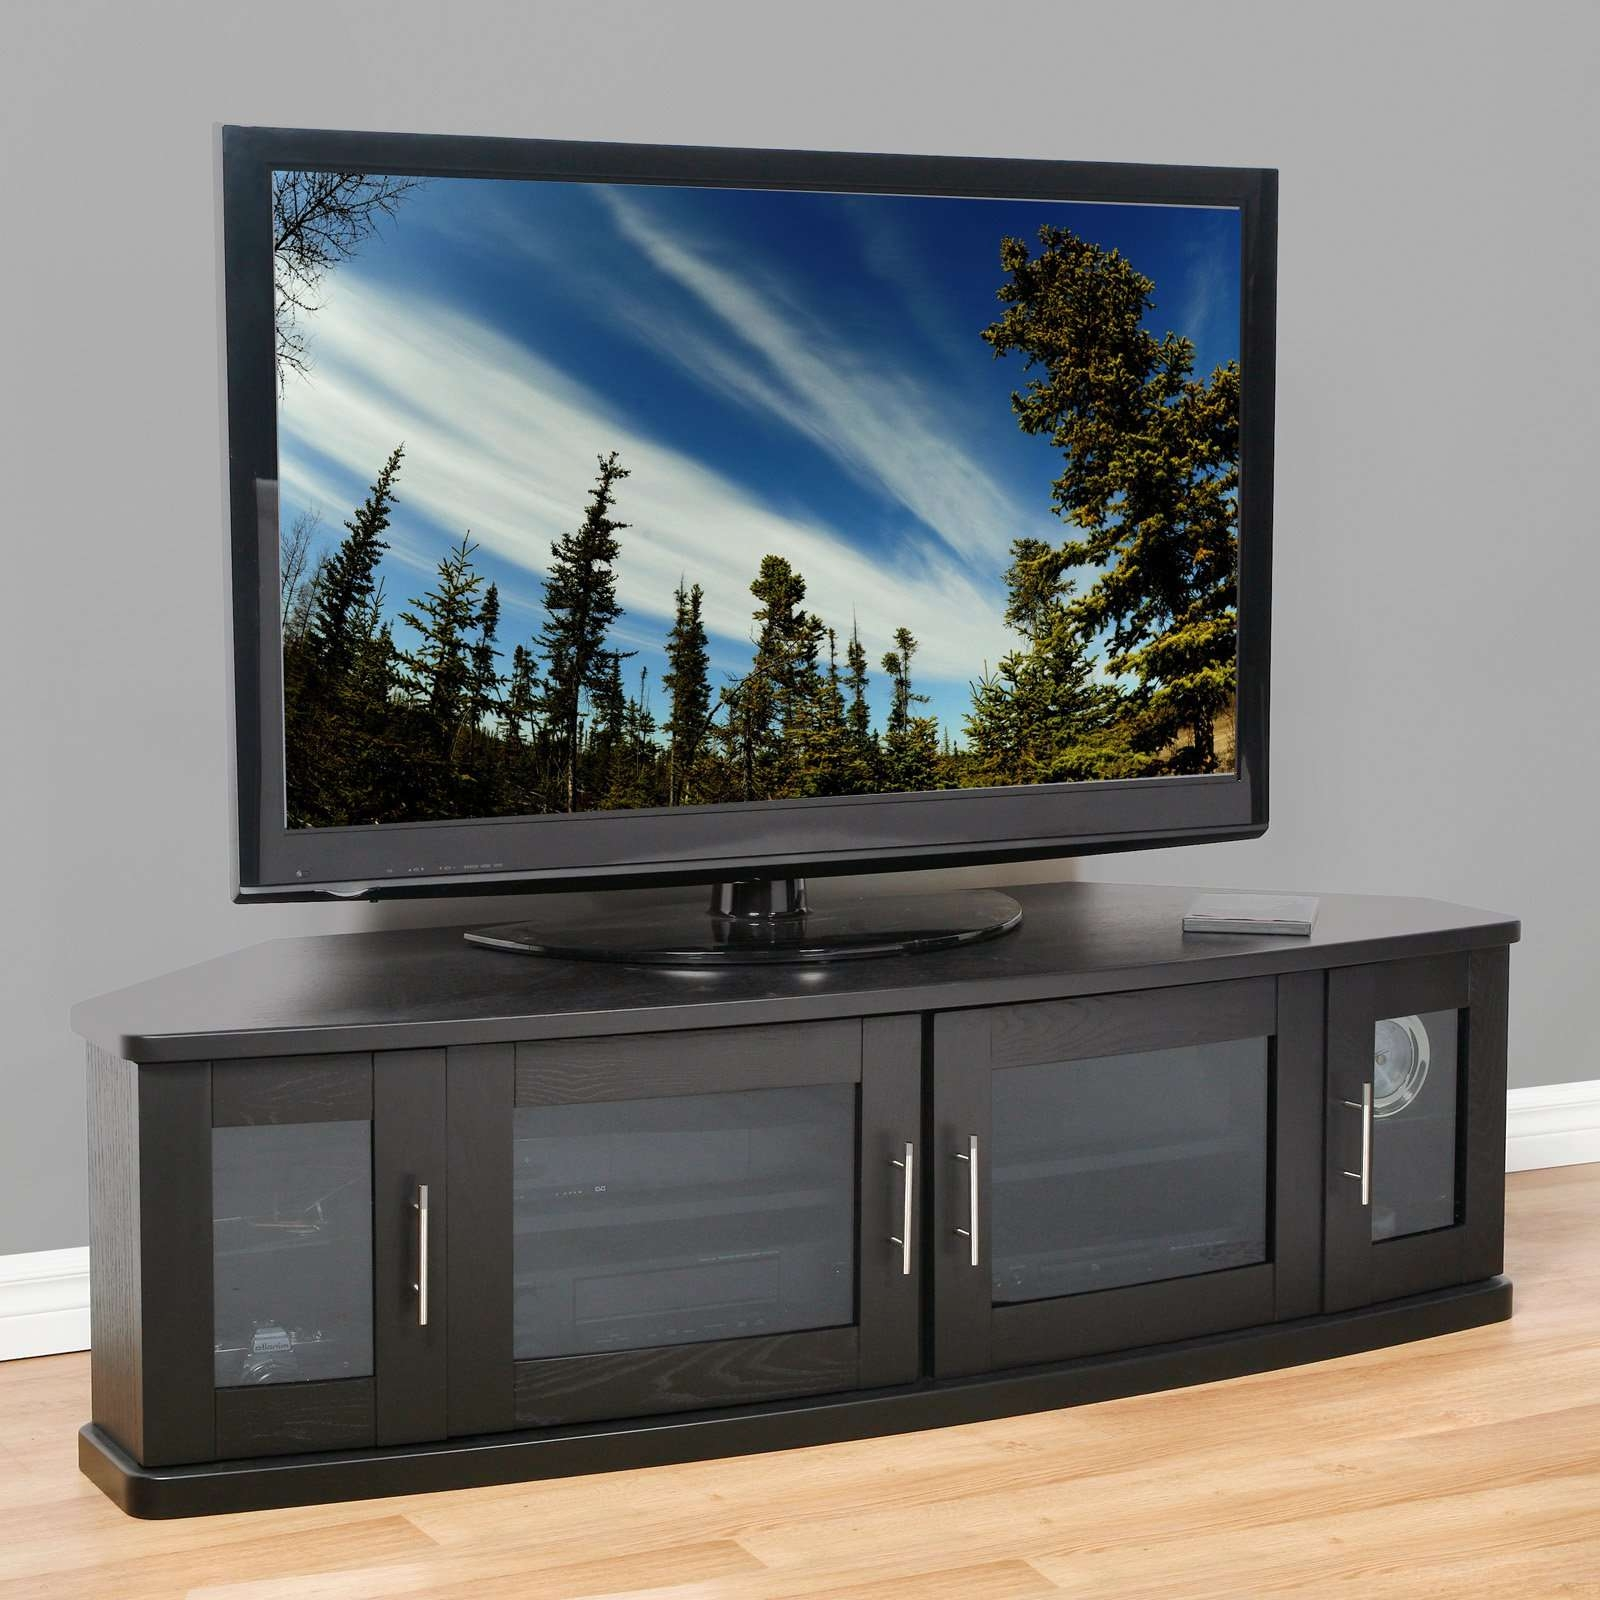 Plateau Newport 62 Inch Corner Tv Stand In Black – Walmart Throughout Black Corner Tv Cabinets (View 16 of 20)